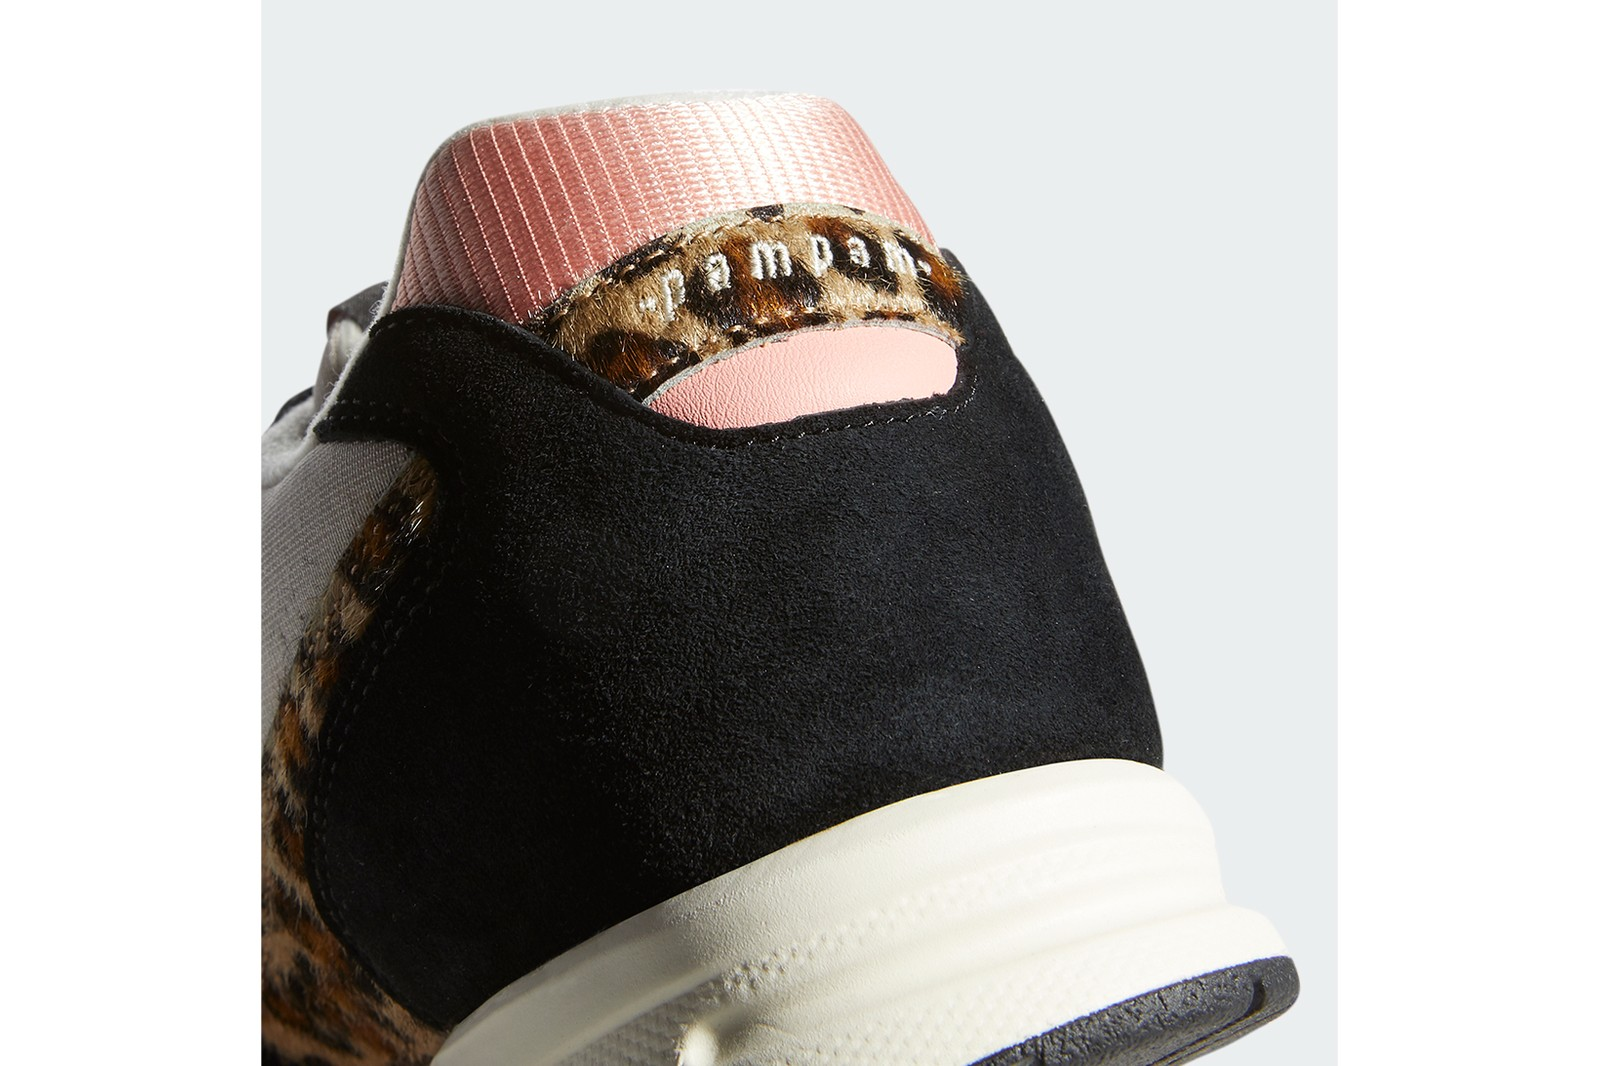 adidas originals pam pam collaboration zx 1000 sneakers pink leopard print black white footwear shoes sneakerhead